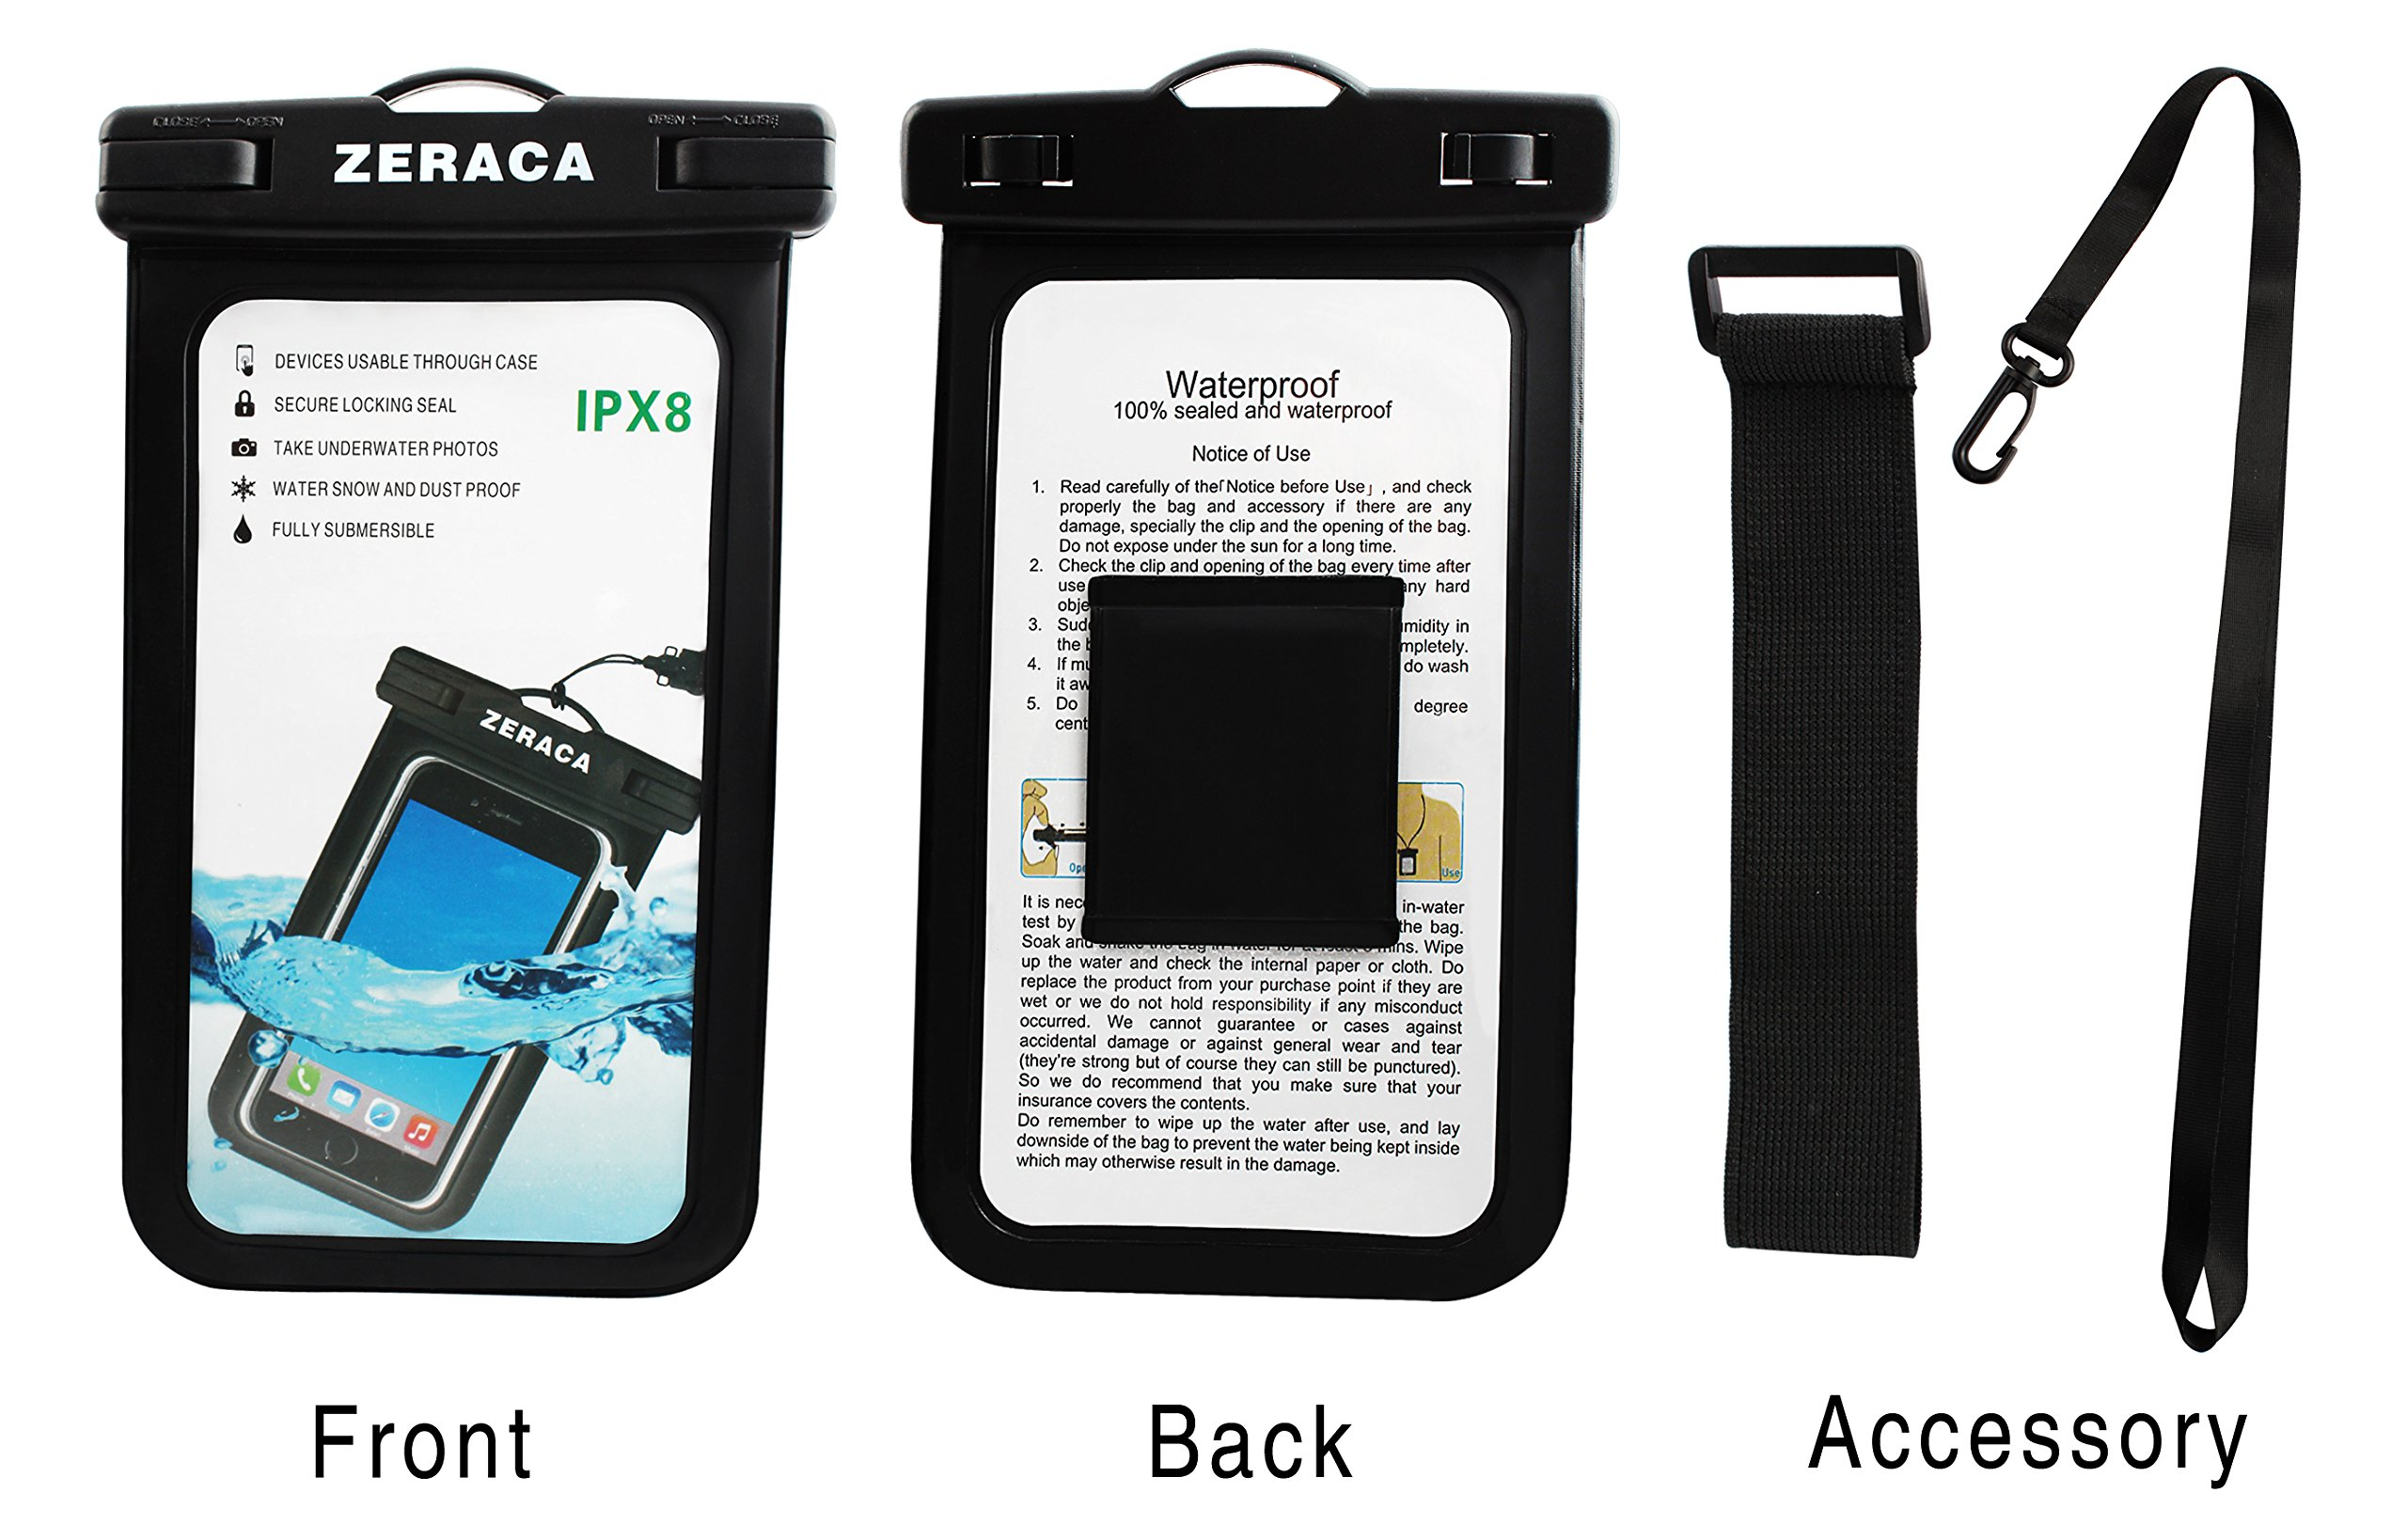 Zeraca Universal Waterproof Case IPX8 Phone Pounch Dry Bag for iPhone 8 8Plus 7 7Plus 6 6s Plus Samsung Google Pixel HTC LG Huawei Up To 6.0 Inches 2 PACK (Black White) by zeraca (Image #2)